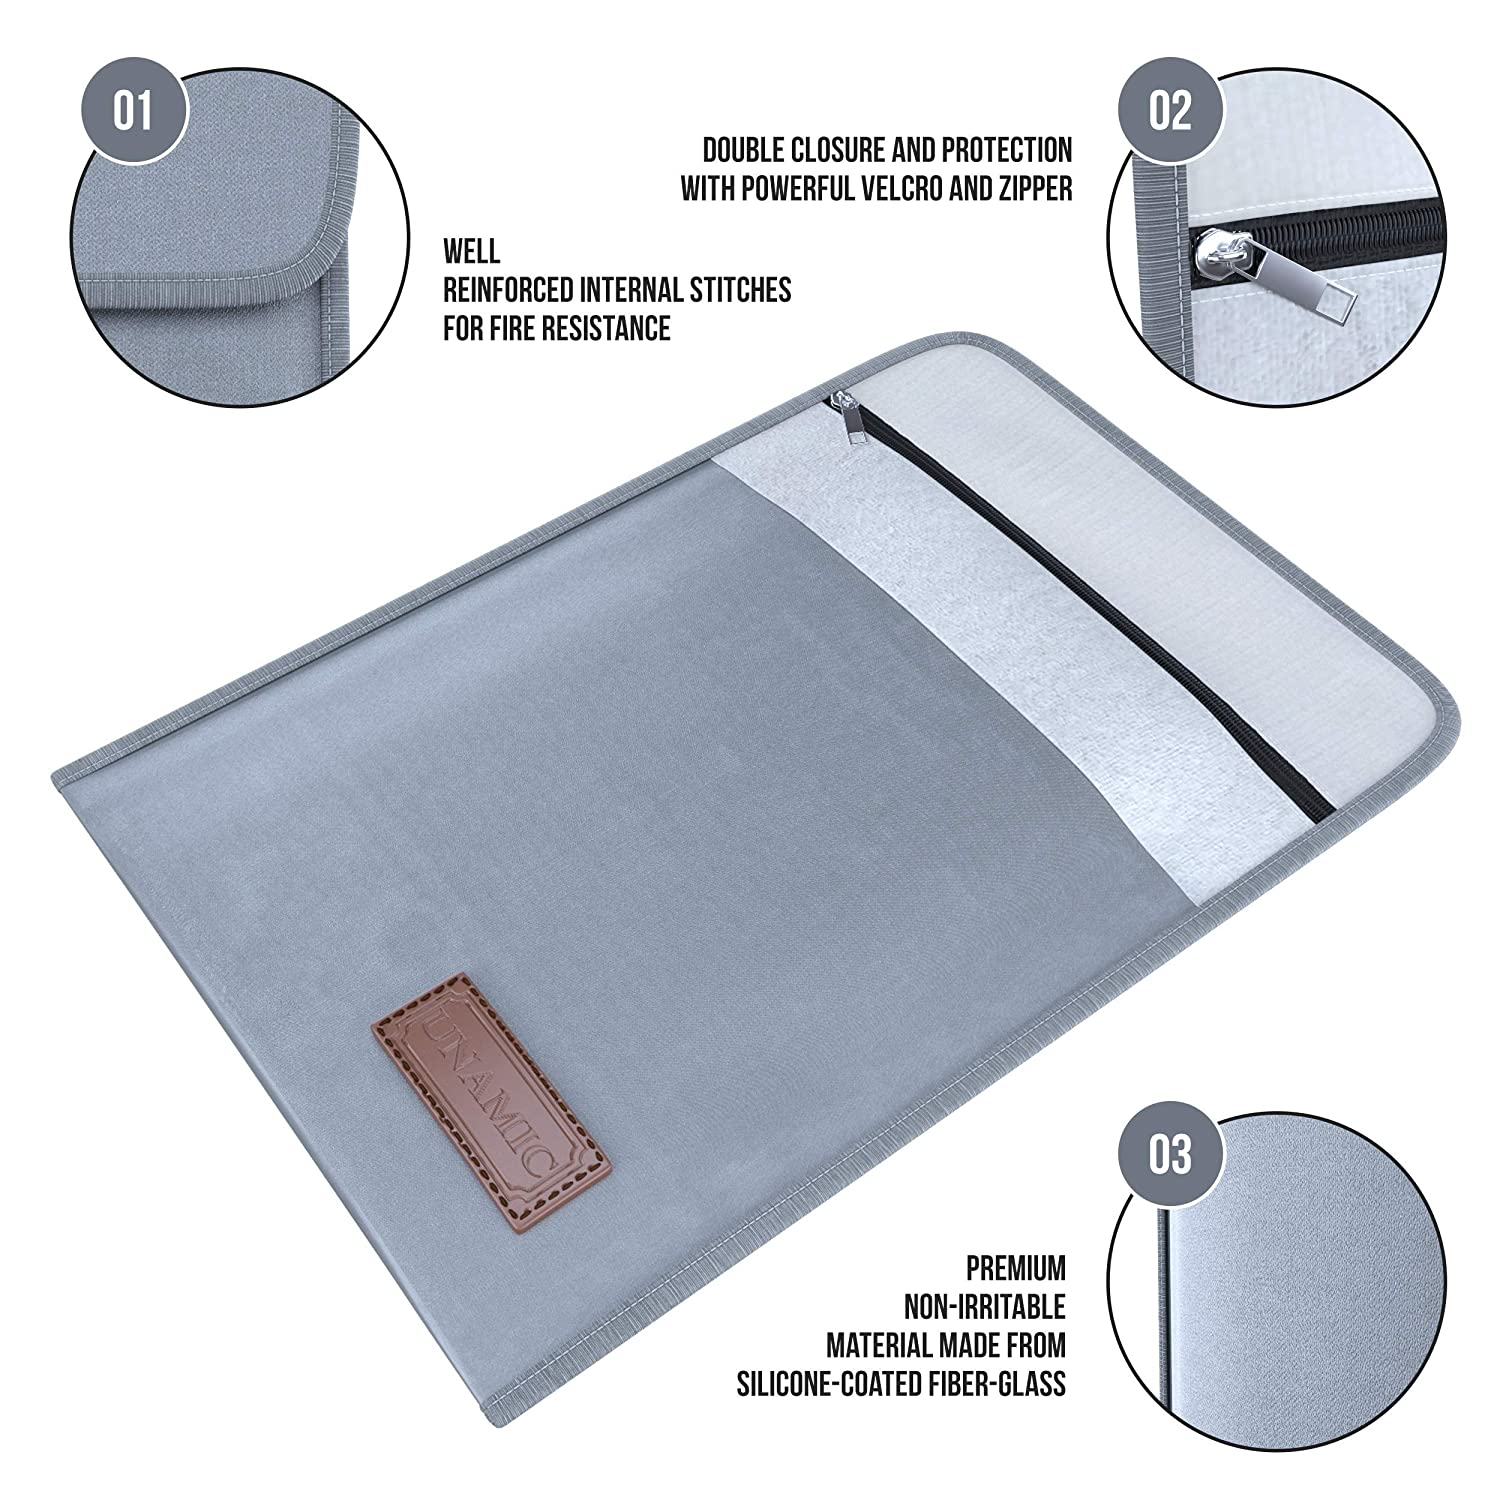 2 Pack Bandle - Waterproof Bags NON-ITCHY Fiber-glass Protection Fire Resistant Pouch Foldable File Fire-Proof Safe Storage Pouch for Passport Money Jewelry Documents Cash 15 x 11 Fireproof Bag